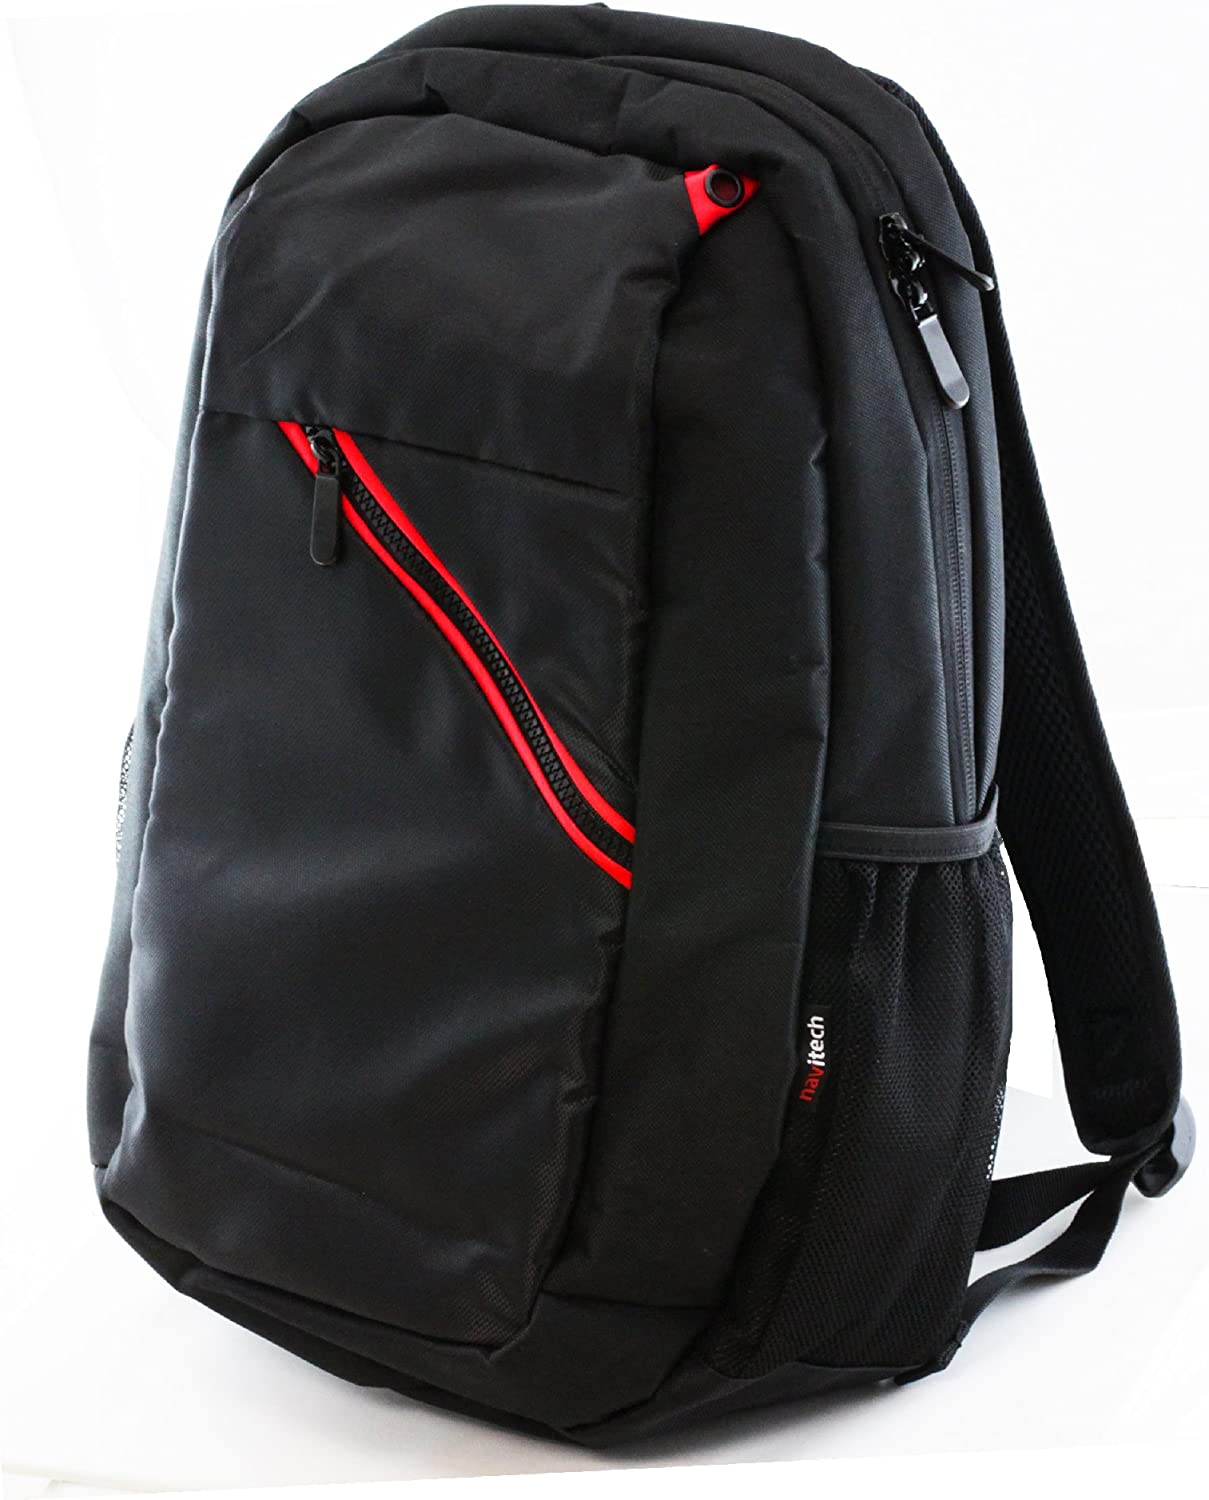 Navitech Laptop Backpack/Rucksack Compatible with The Up to 15.6 inch Laptops/Notebooks Including Acer Aspire ES1-512 / Acer Aspire V3-572 / ACER E5-571 / Acer Aspire E 15 ES1-512-C88M